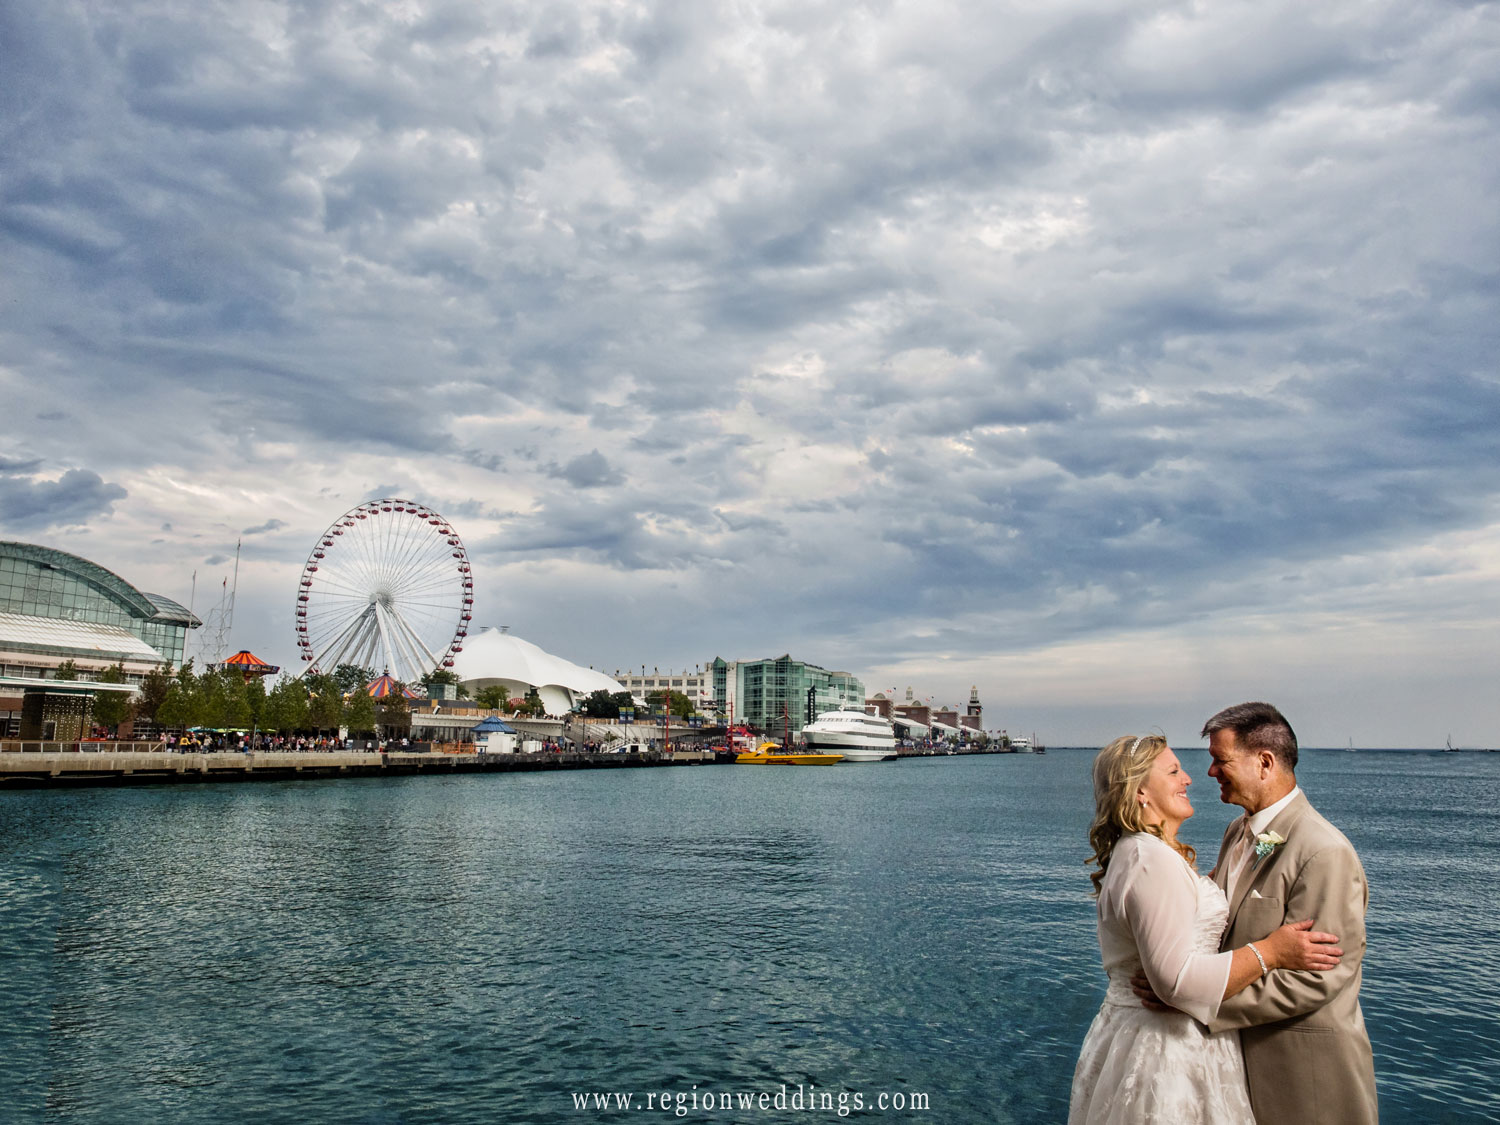 Bride and groom gaze at each other with the Navy Pier ferris wheel in the background.